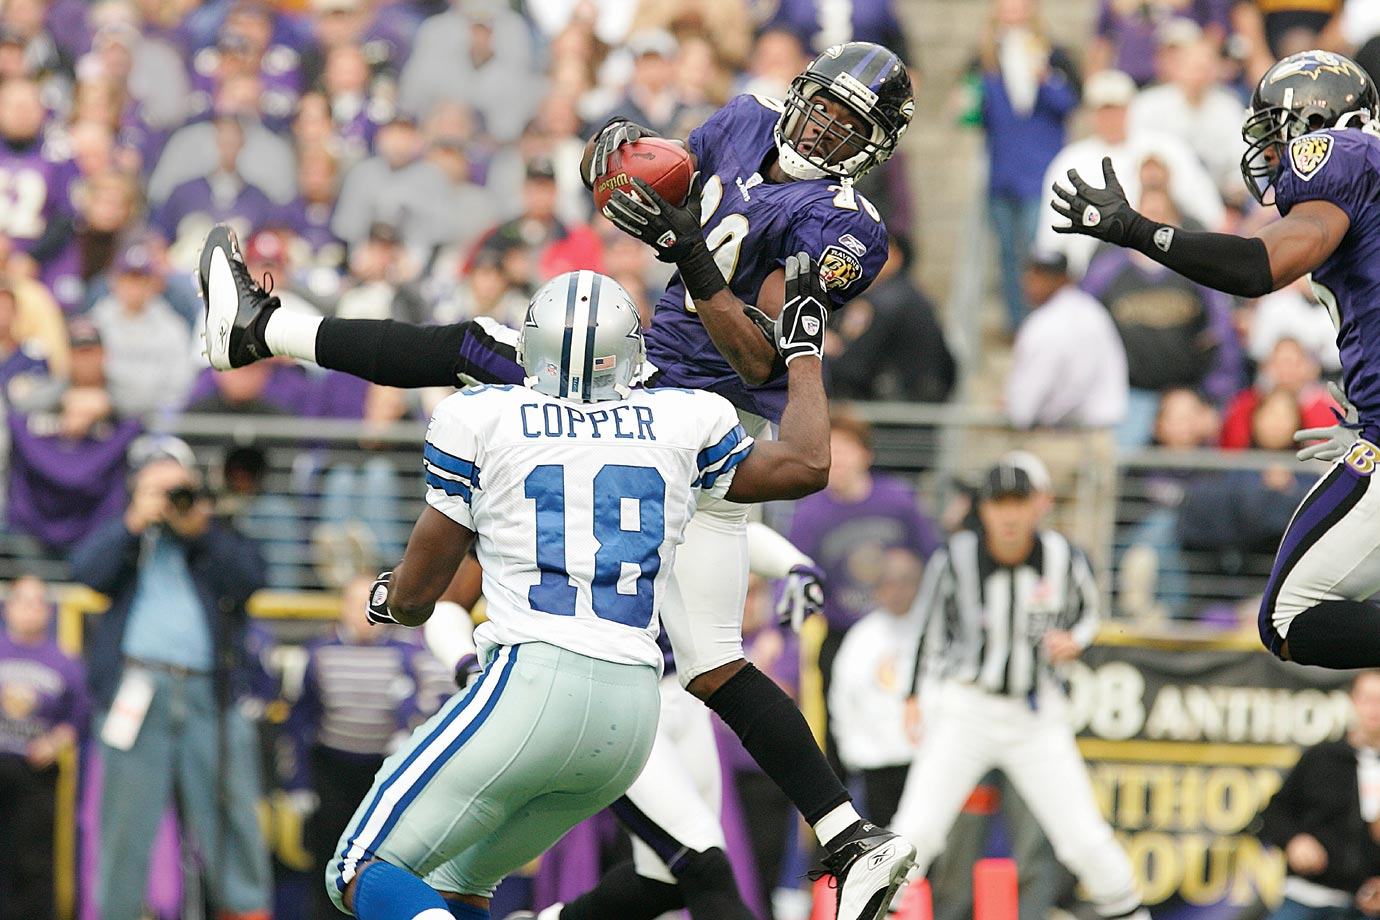 In his 11th (and, as it turned out, final) season in Baltimore, Reed claimed his first Super Bowl win. He has earned a spot as one of game's best safeties ever. His Credentials: Nine-time Pro Bowl selection, eight-time All-Pro, 2004 AP Defensive Player of the Year, holds NFL record for longest interception return (107 yards), named to NFL All-Decade Team for 2000s, has 61 career regular-season interceptions and seven touchdowns. Others in Consideration: Chris Johnson (2008, Titans); Aaron Rodgers (2005, Packers); Steven Jackson (2004, Rams); Dallas Clark (2003, Colts); Eric Moulds (1996, Bills); James Brooks (1981, Chargers)